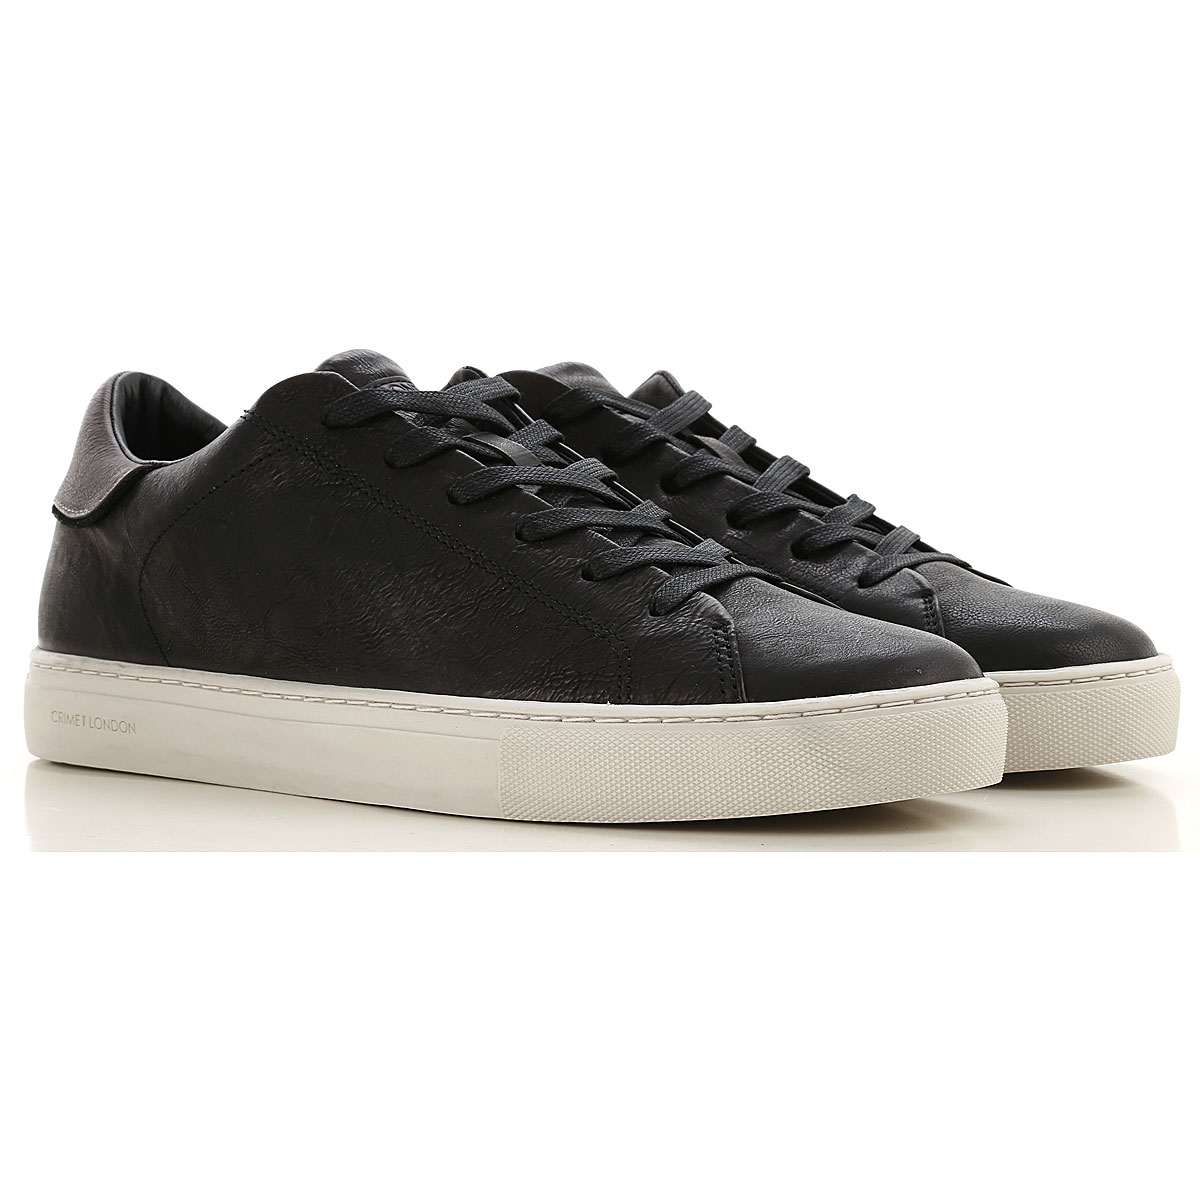 Crime Sneakers for Men On Sale, Black, Leather, 2019, 10 10.5 11.5 7.5 8